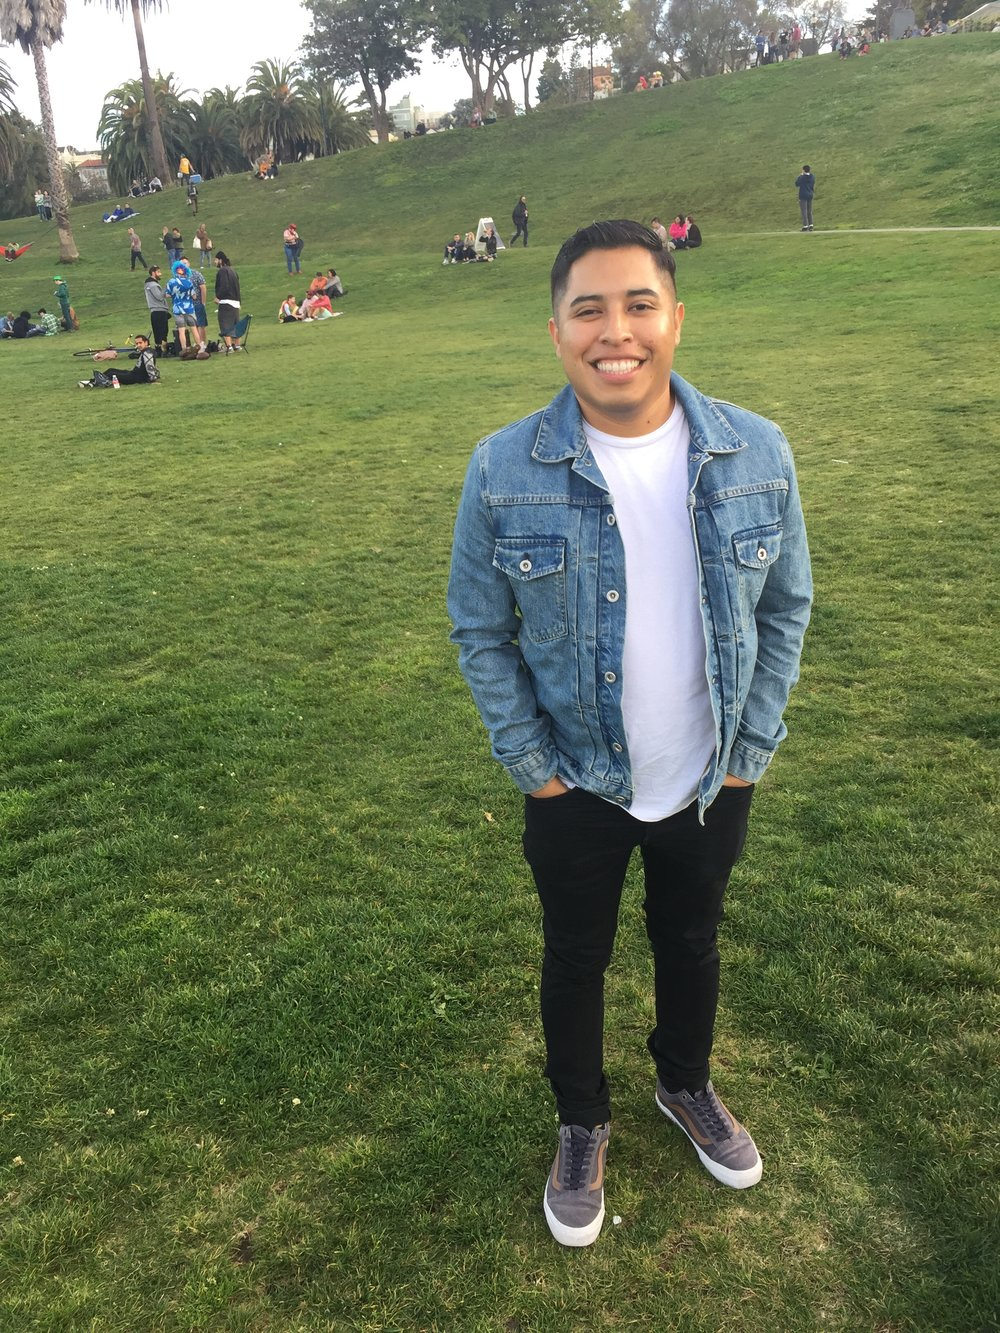 Jonathan Roque, Social Media Manager